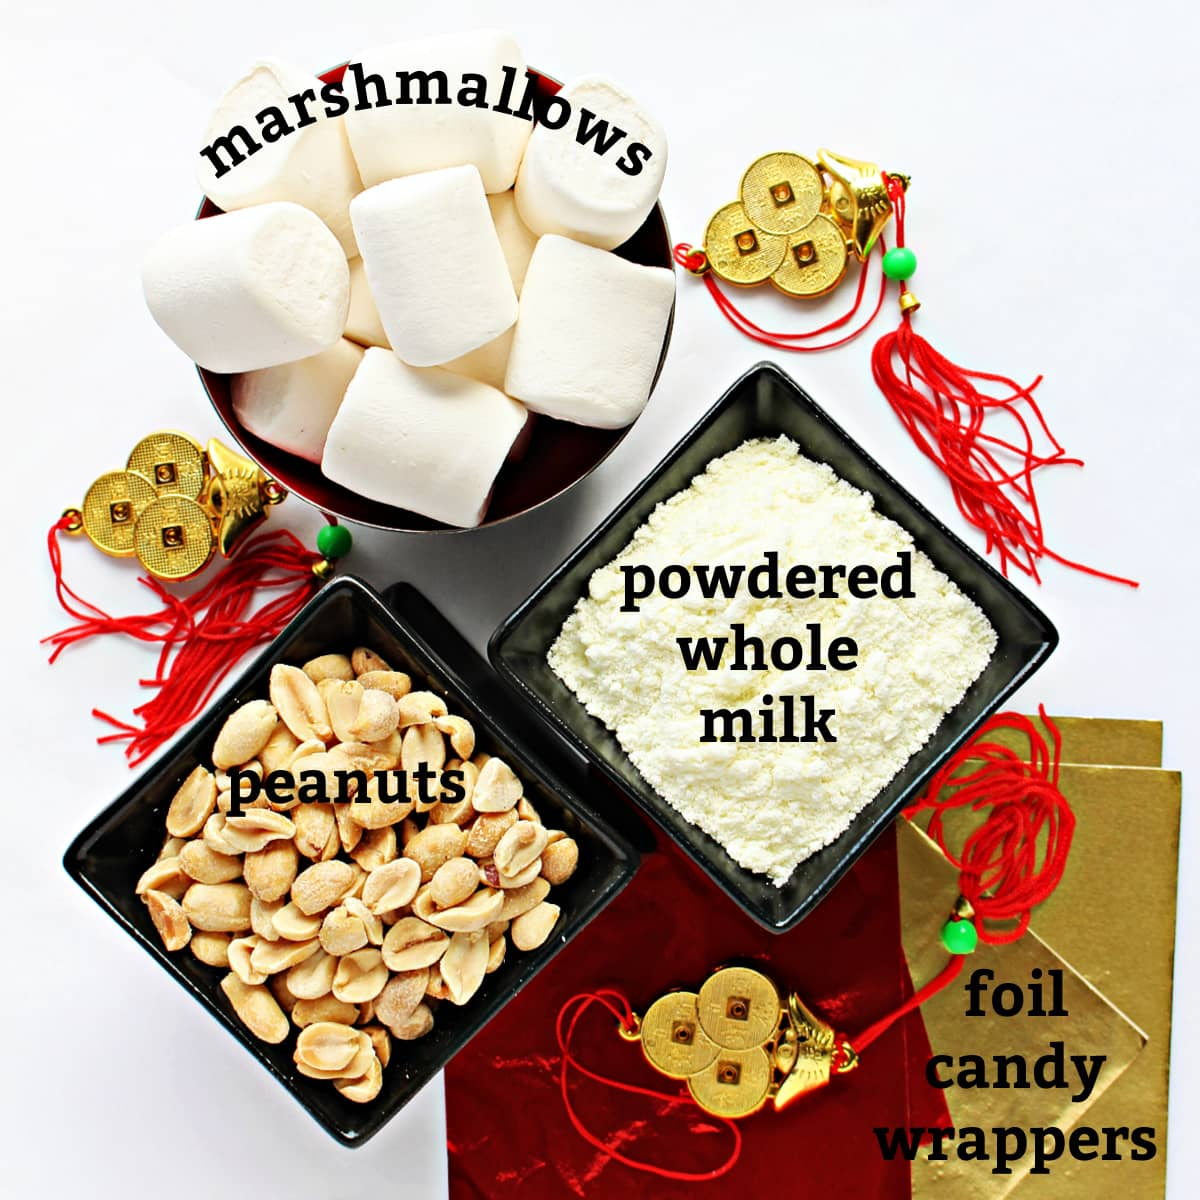 Recipe ingredients with text for marshmallows, peanuts, powdered whole milk, foil candy wrappers.